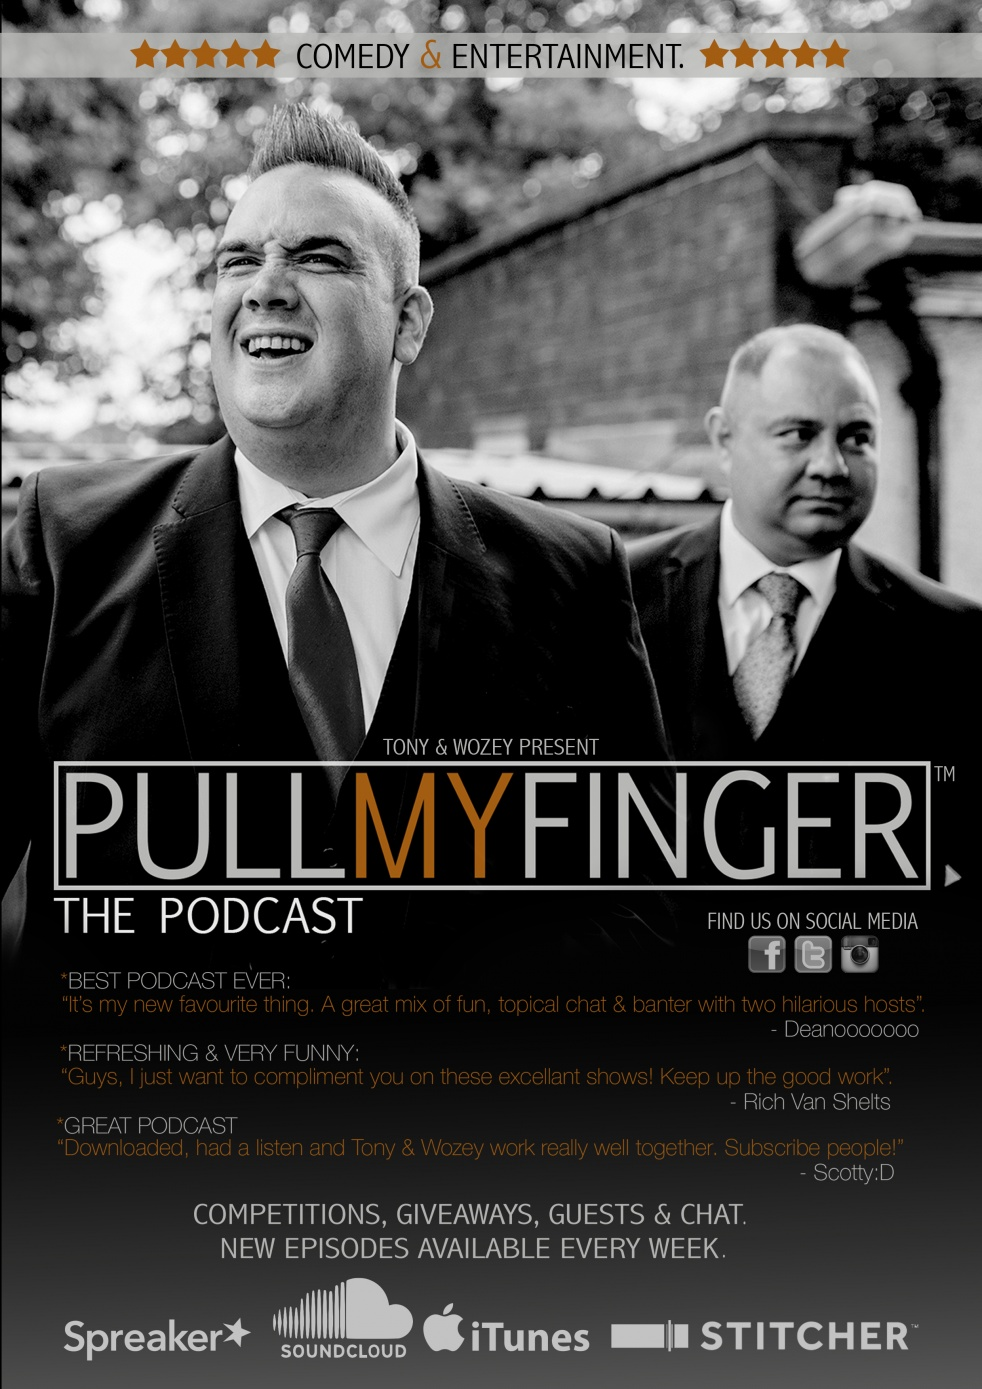 Pull My Finger - Cover Image